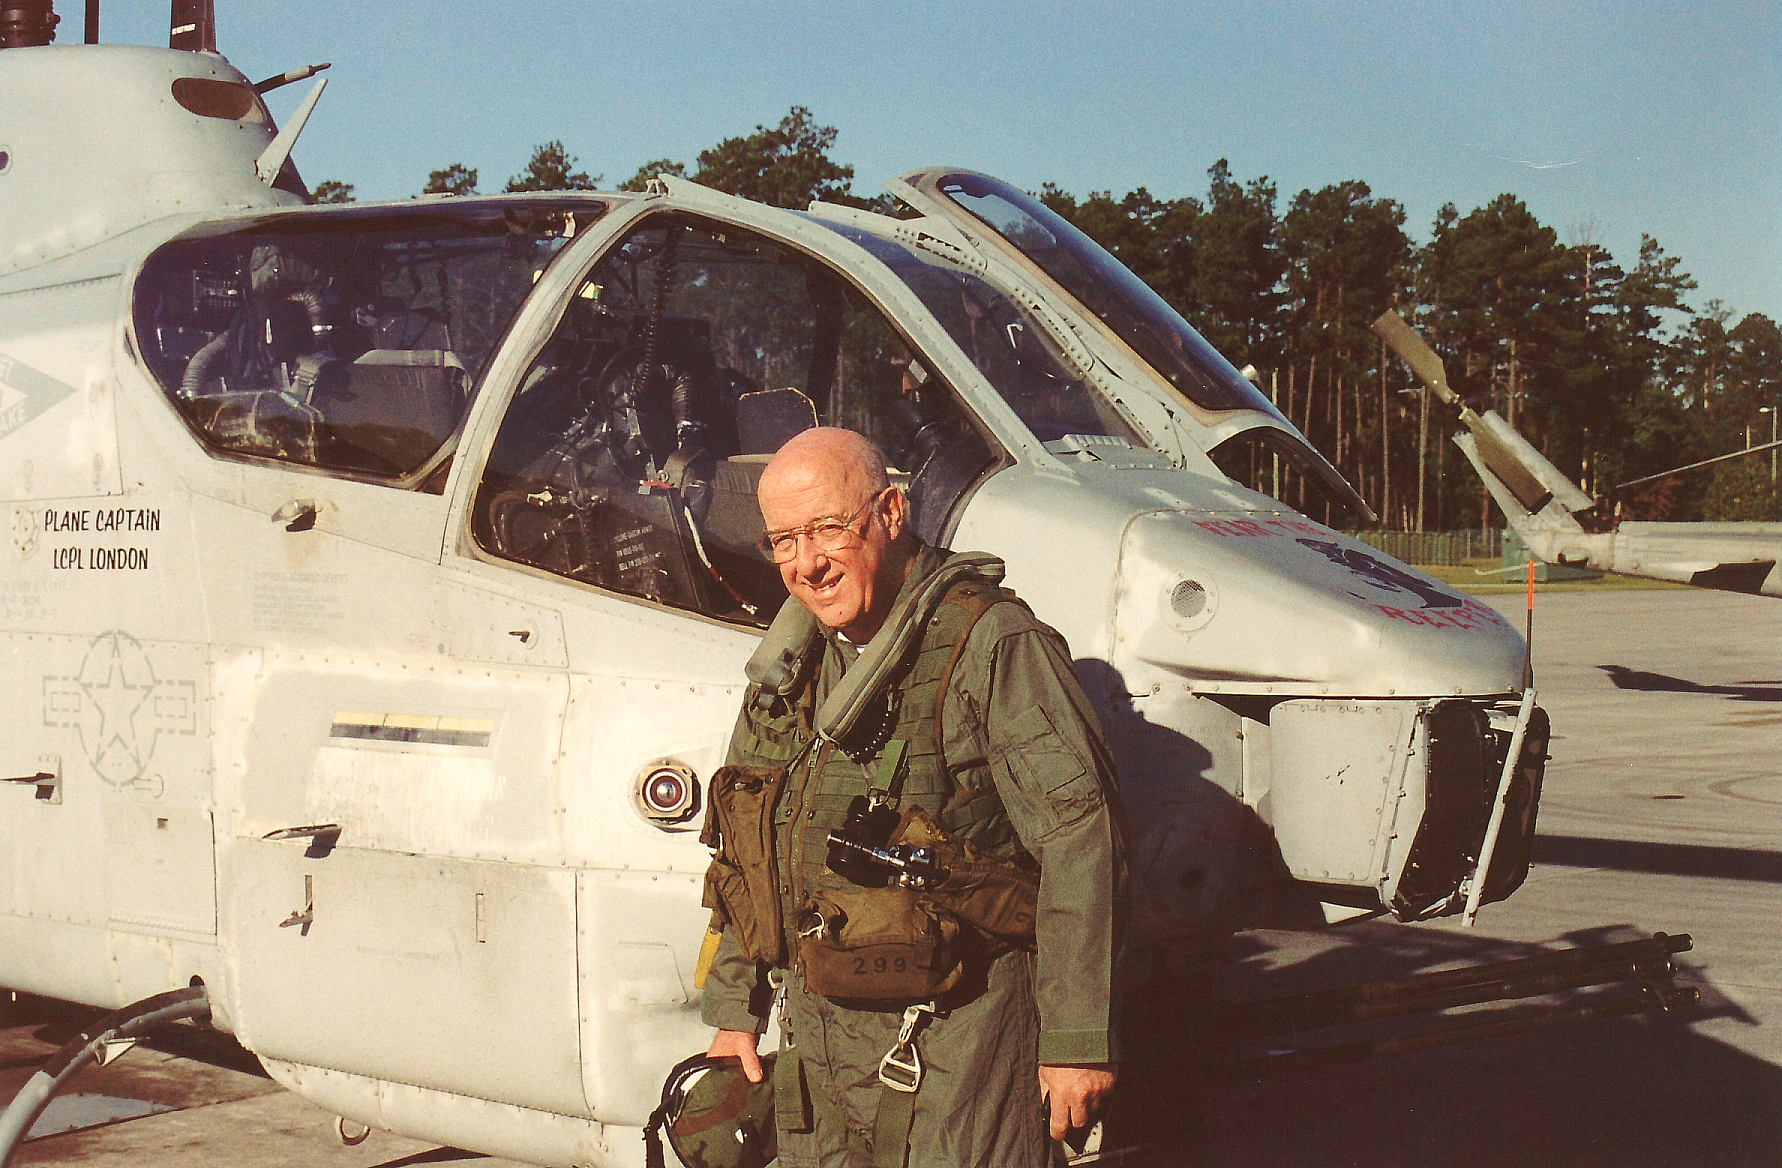 Robert F. Dorr about to take a ride in a Bell AH-1W Super Cobra in October 2003. (photo via Robert F. Dorr)